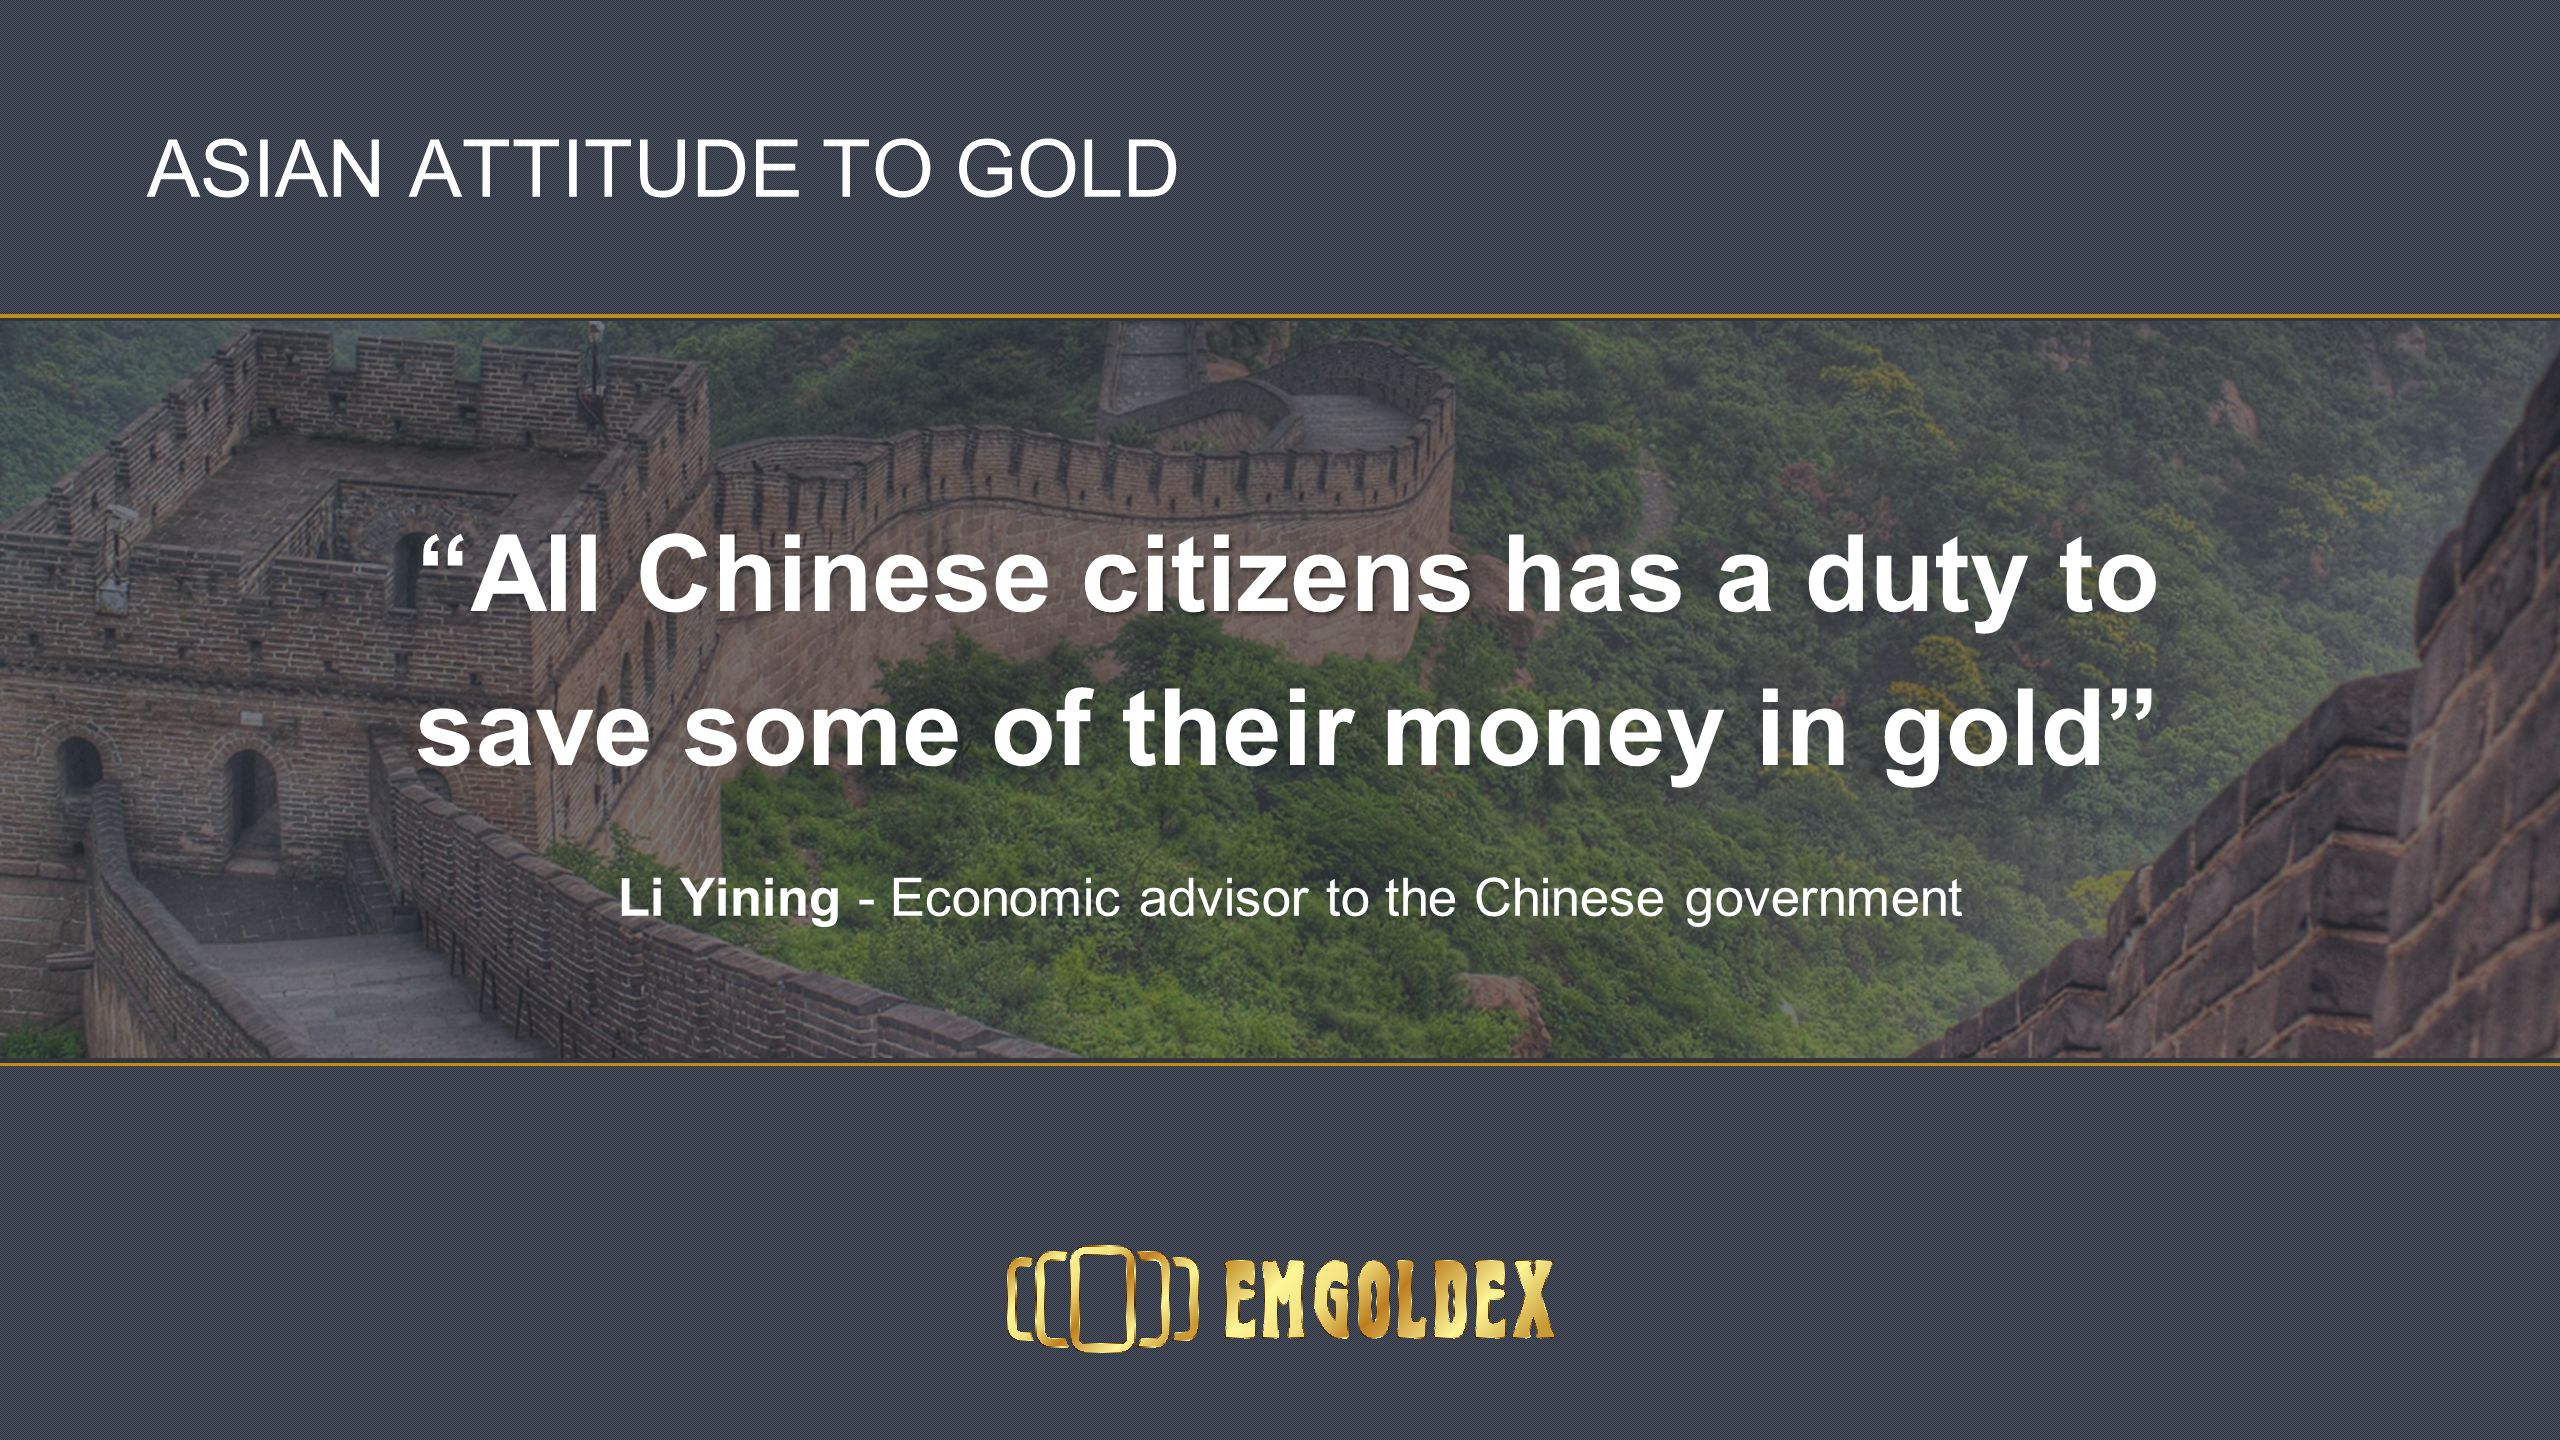 ASIAN ATTITUDE TO GOLD All Chinese citizens has a duty to save some of their money in gold Li Yining - Economic advisor to the Chinese government